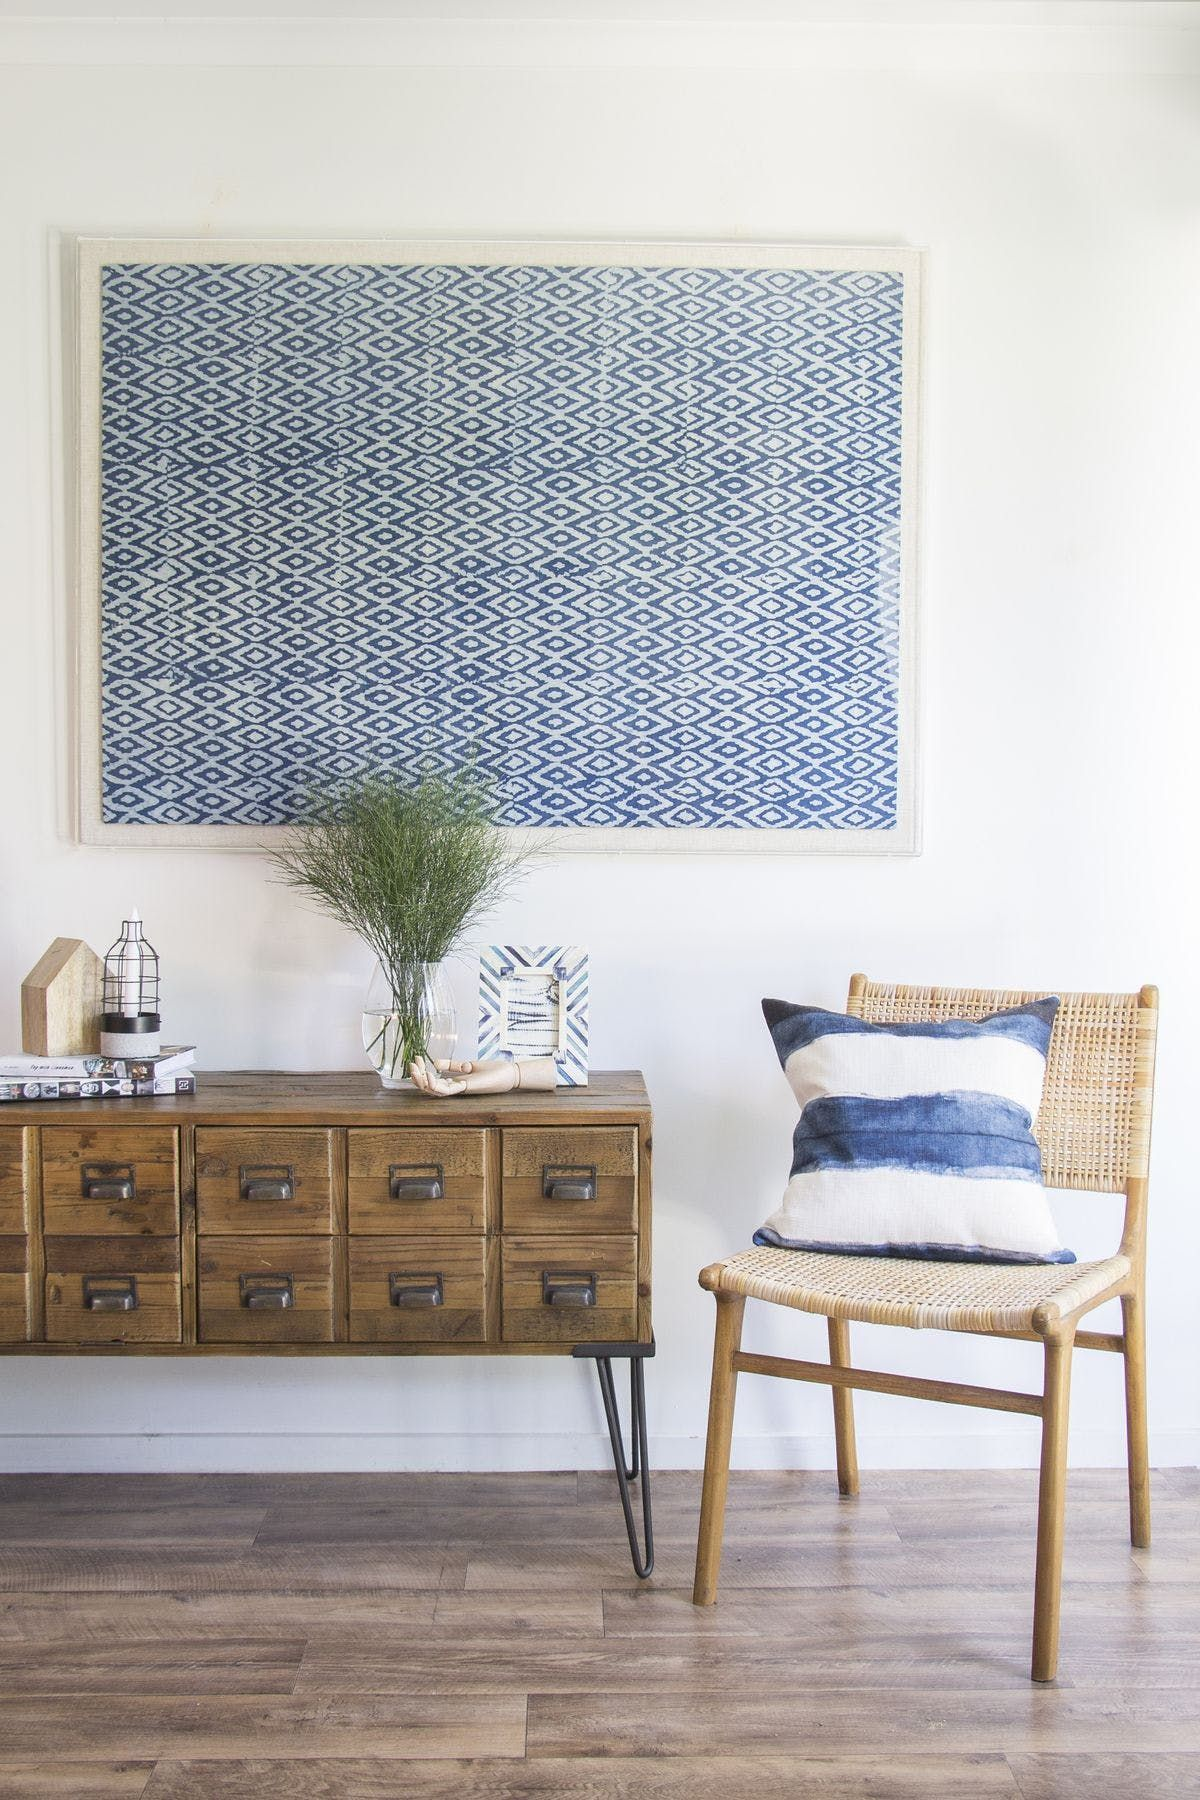 Unexpected Art: 10 Things You've Never Thought About Framing (But Should!)